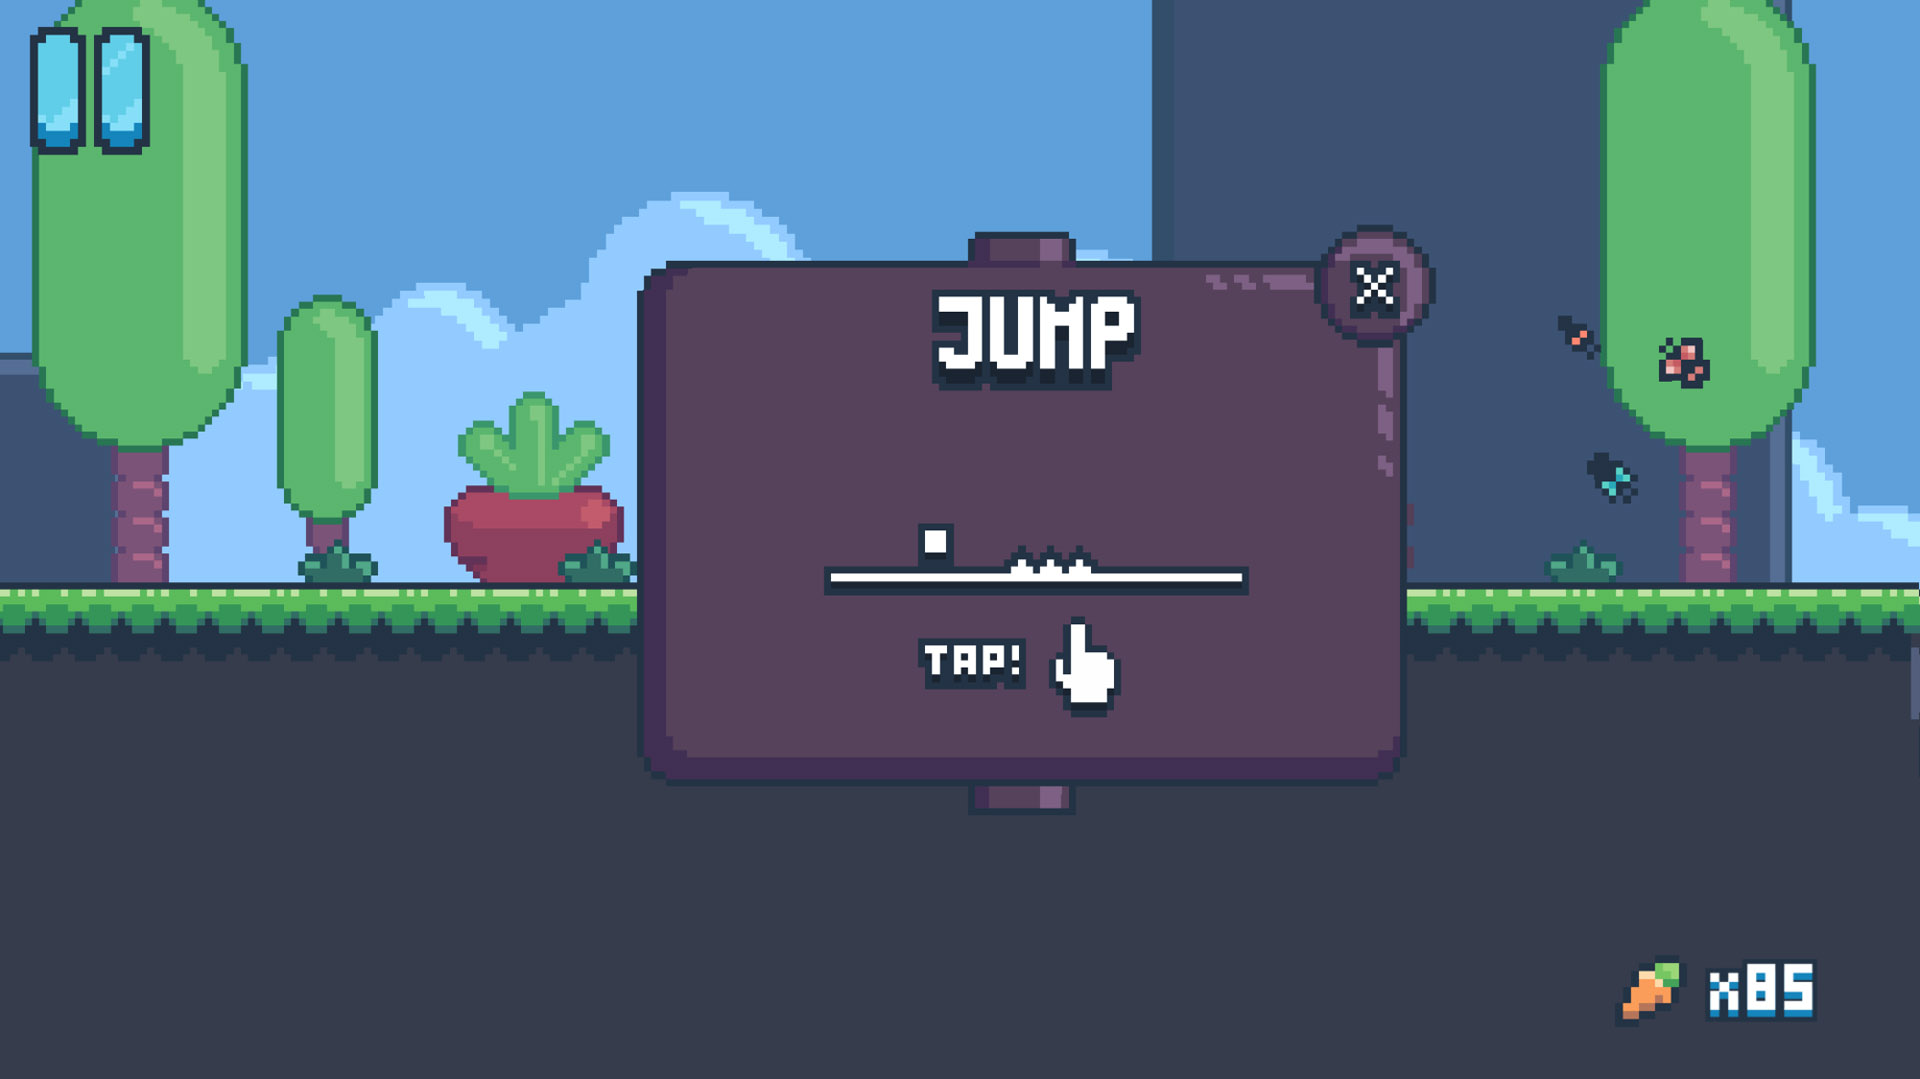 In Yeah Bunny, you jump simply by tapping the screen.